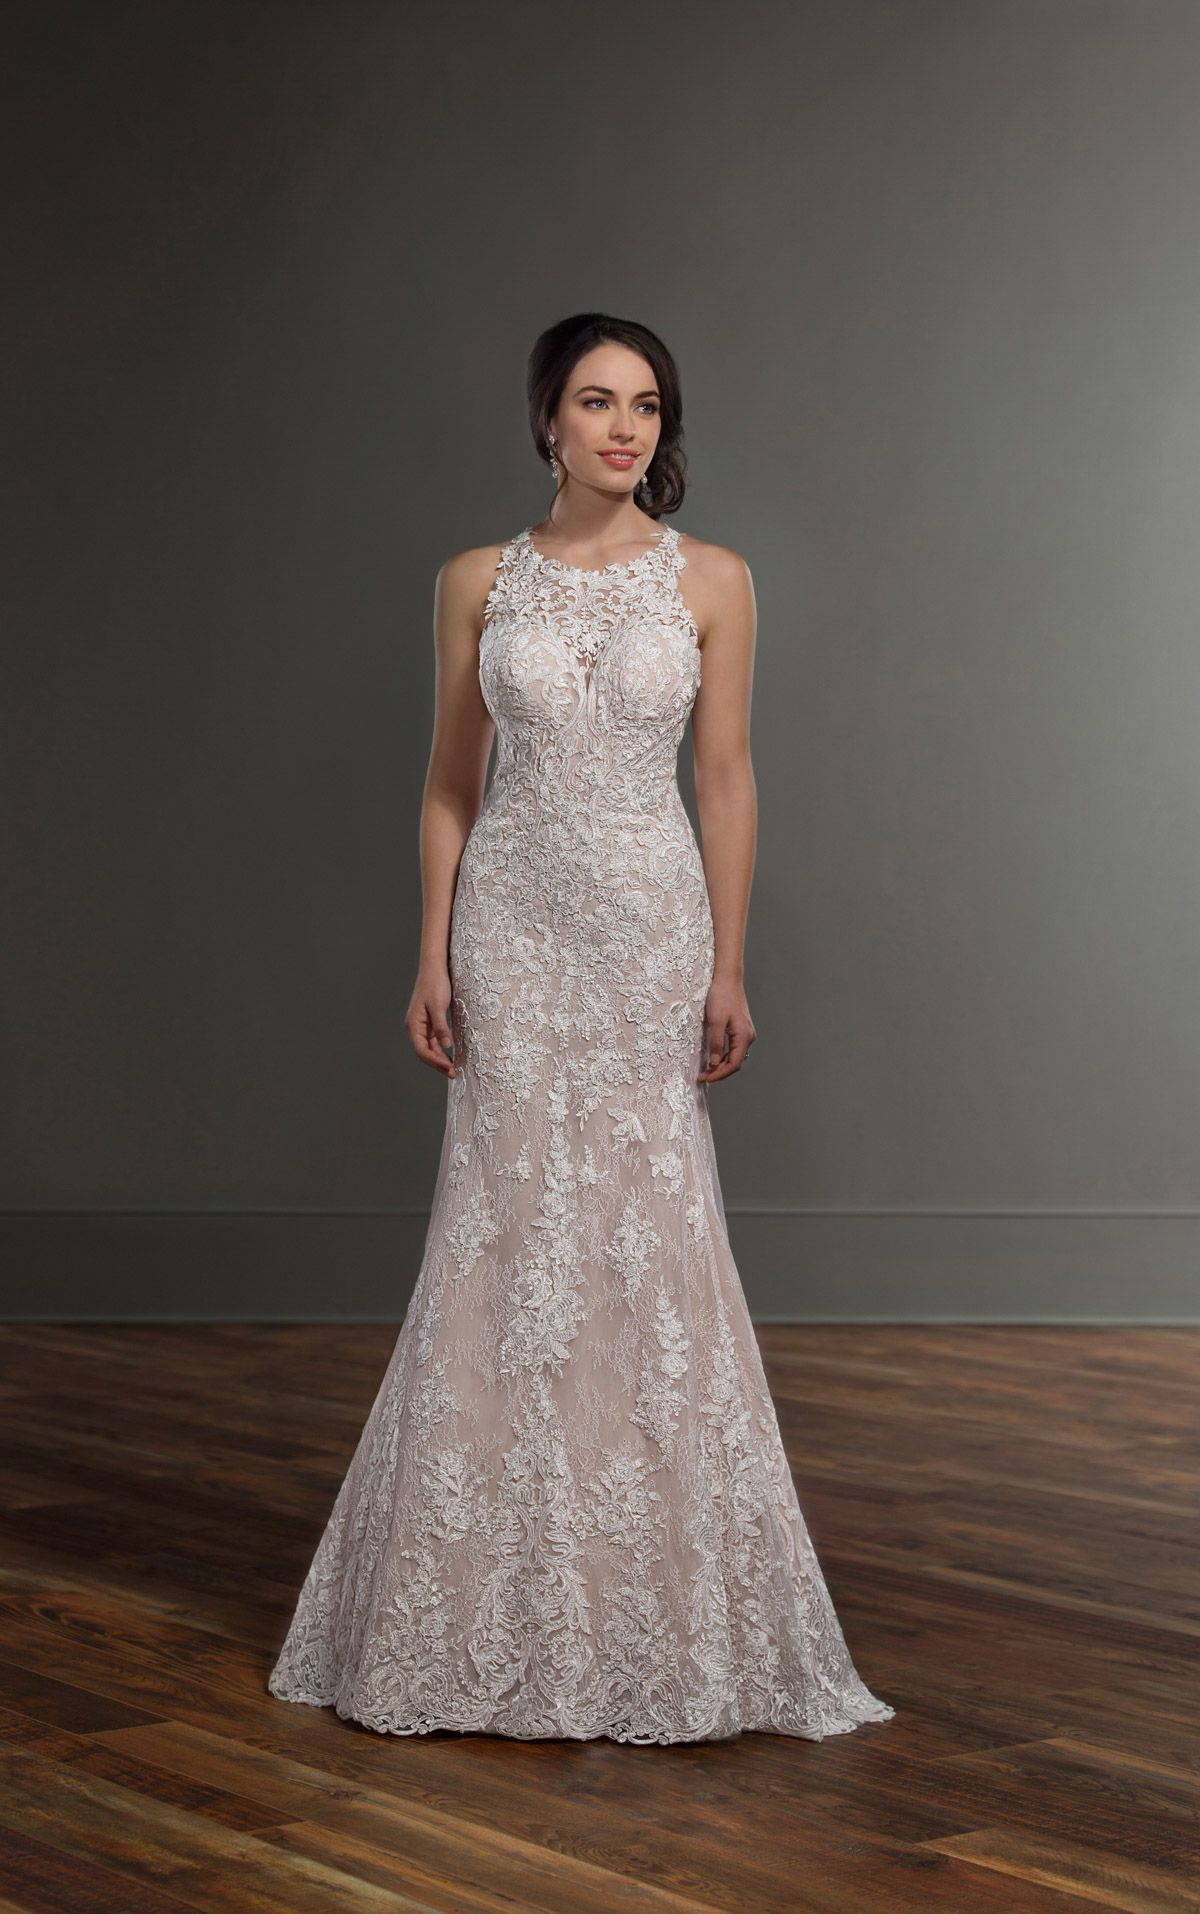 Lace wedding dresses fashion pinterest lace wedding dresses